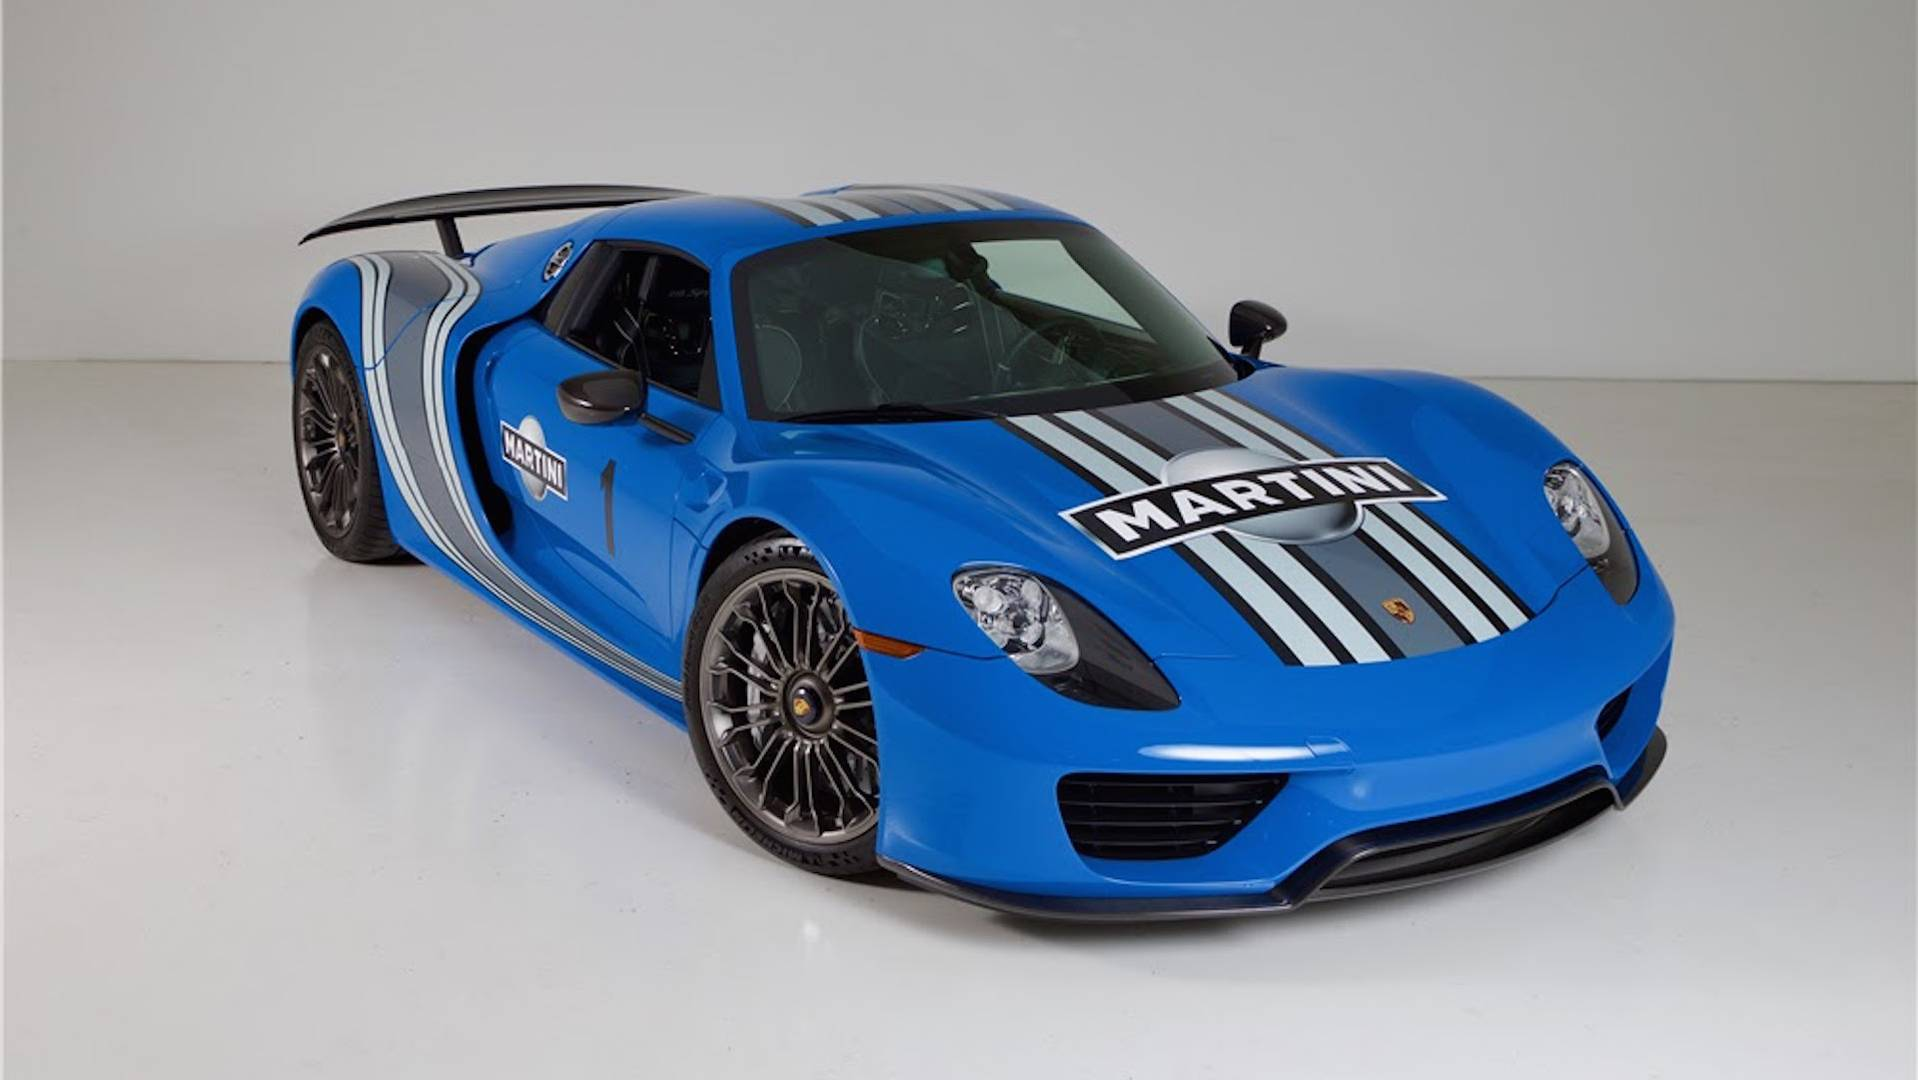 une porsche 918 spyder unique au monde aux ench res. Black Bedroom Furniture Sets. Home Design Ideas